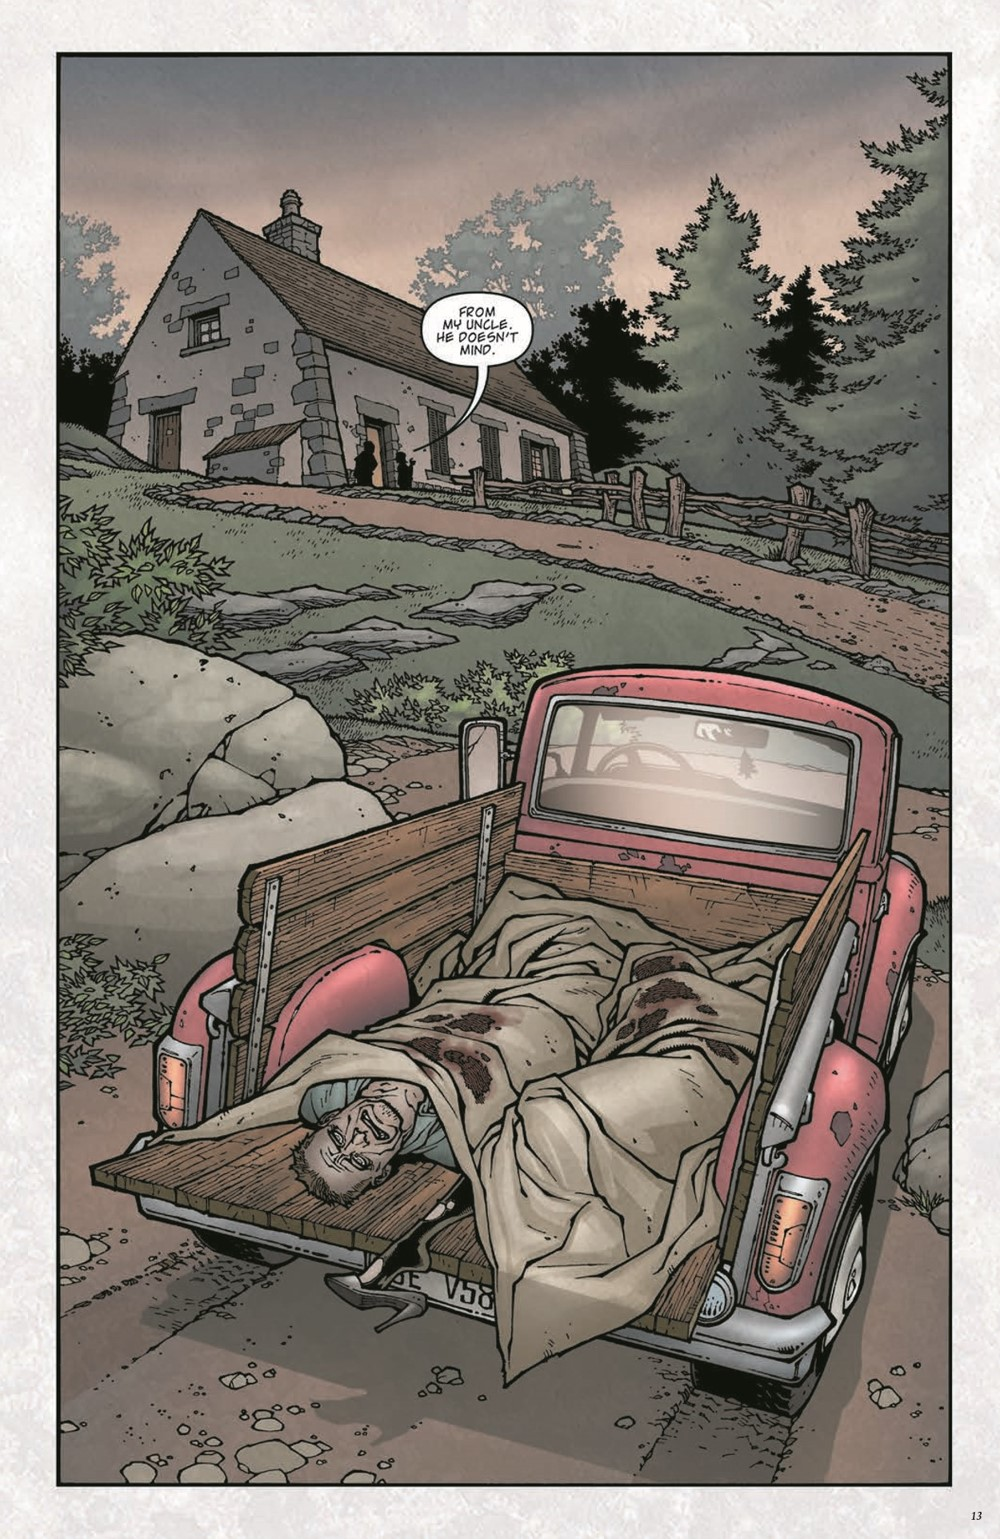 LnK-KeyhouseCompendium-pr-7 ComicList Previews: LOCKE AND KEY KEYHOUSE COMPENDIUM HARDCOVER COLLECTION